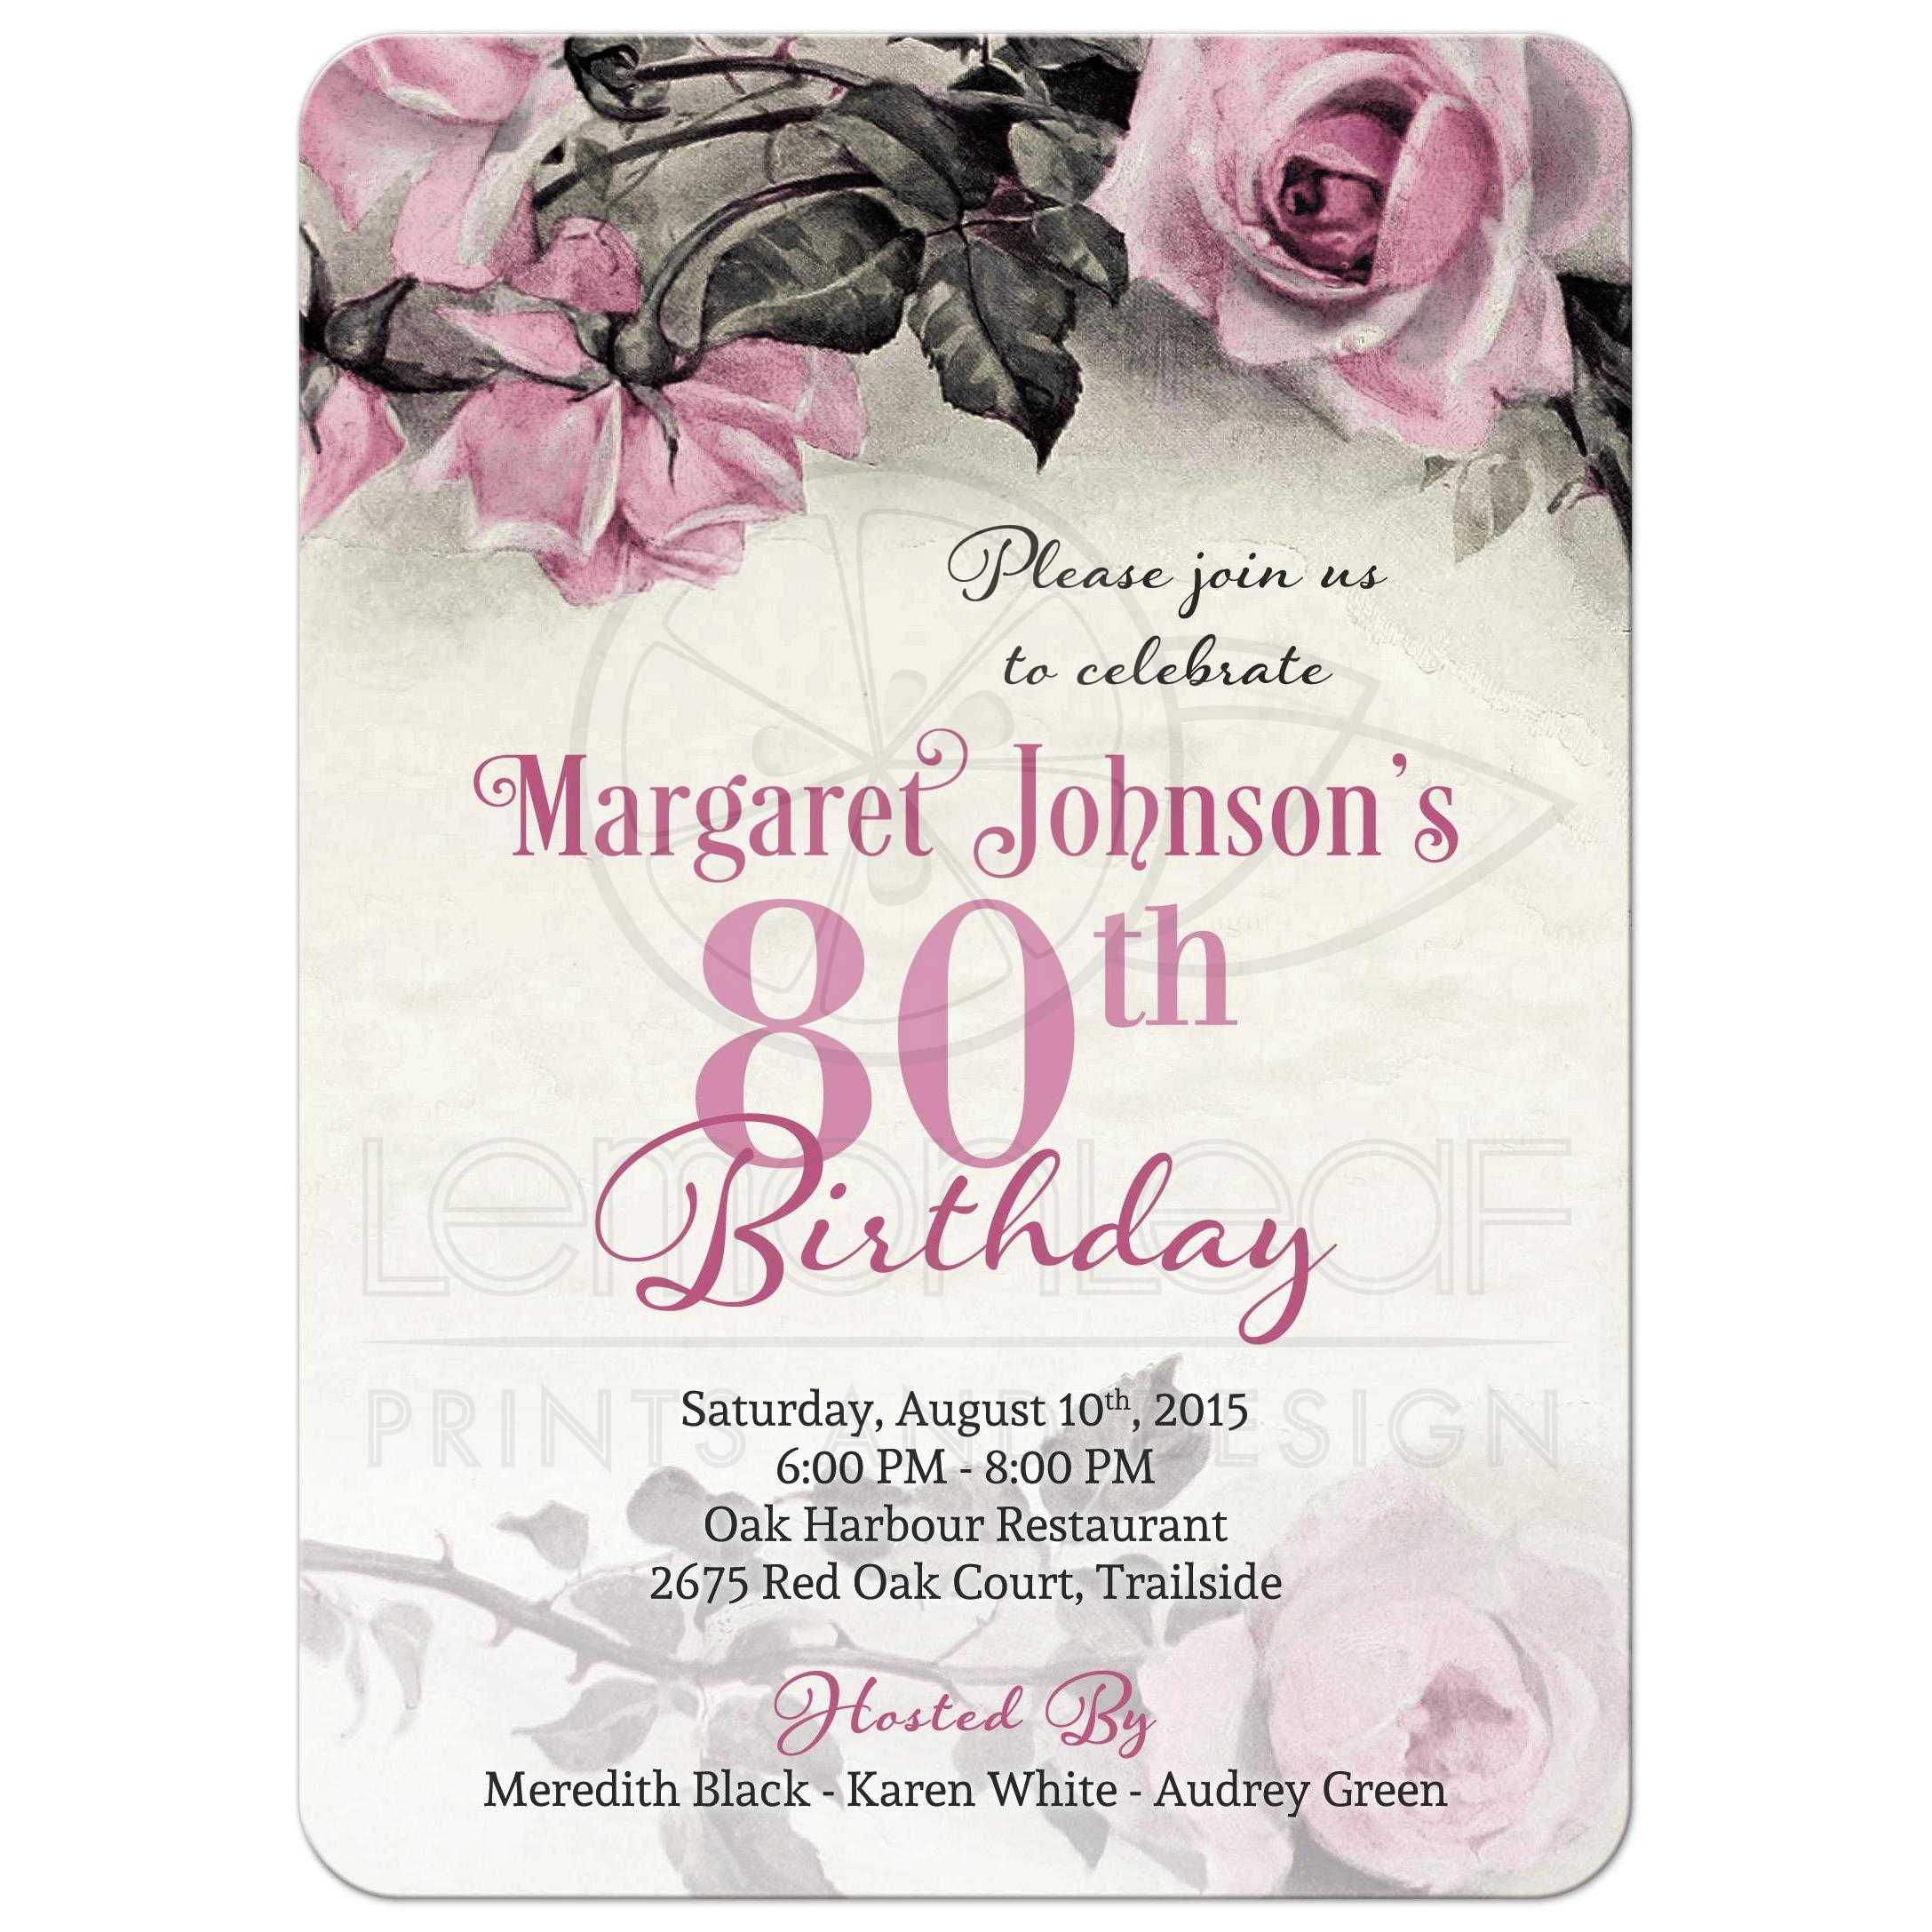 80th birthday invitation | vintage pink grey rose, Birthday invitations